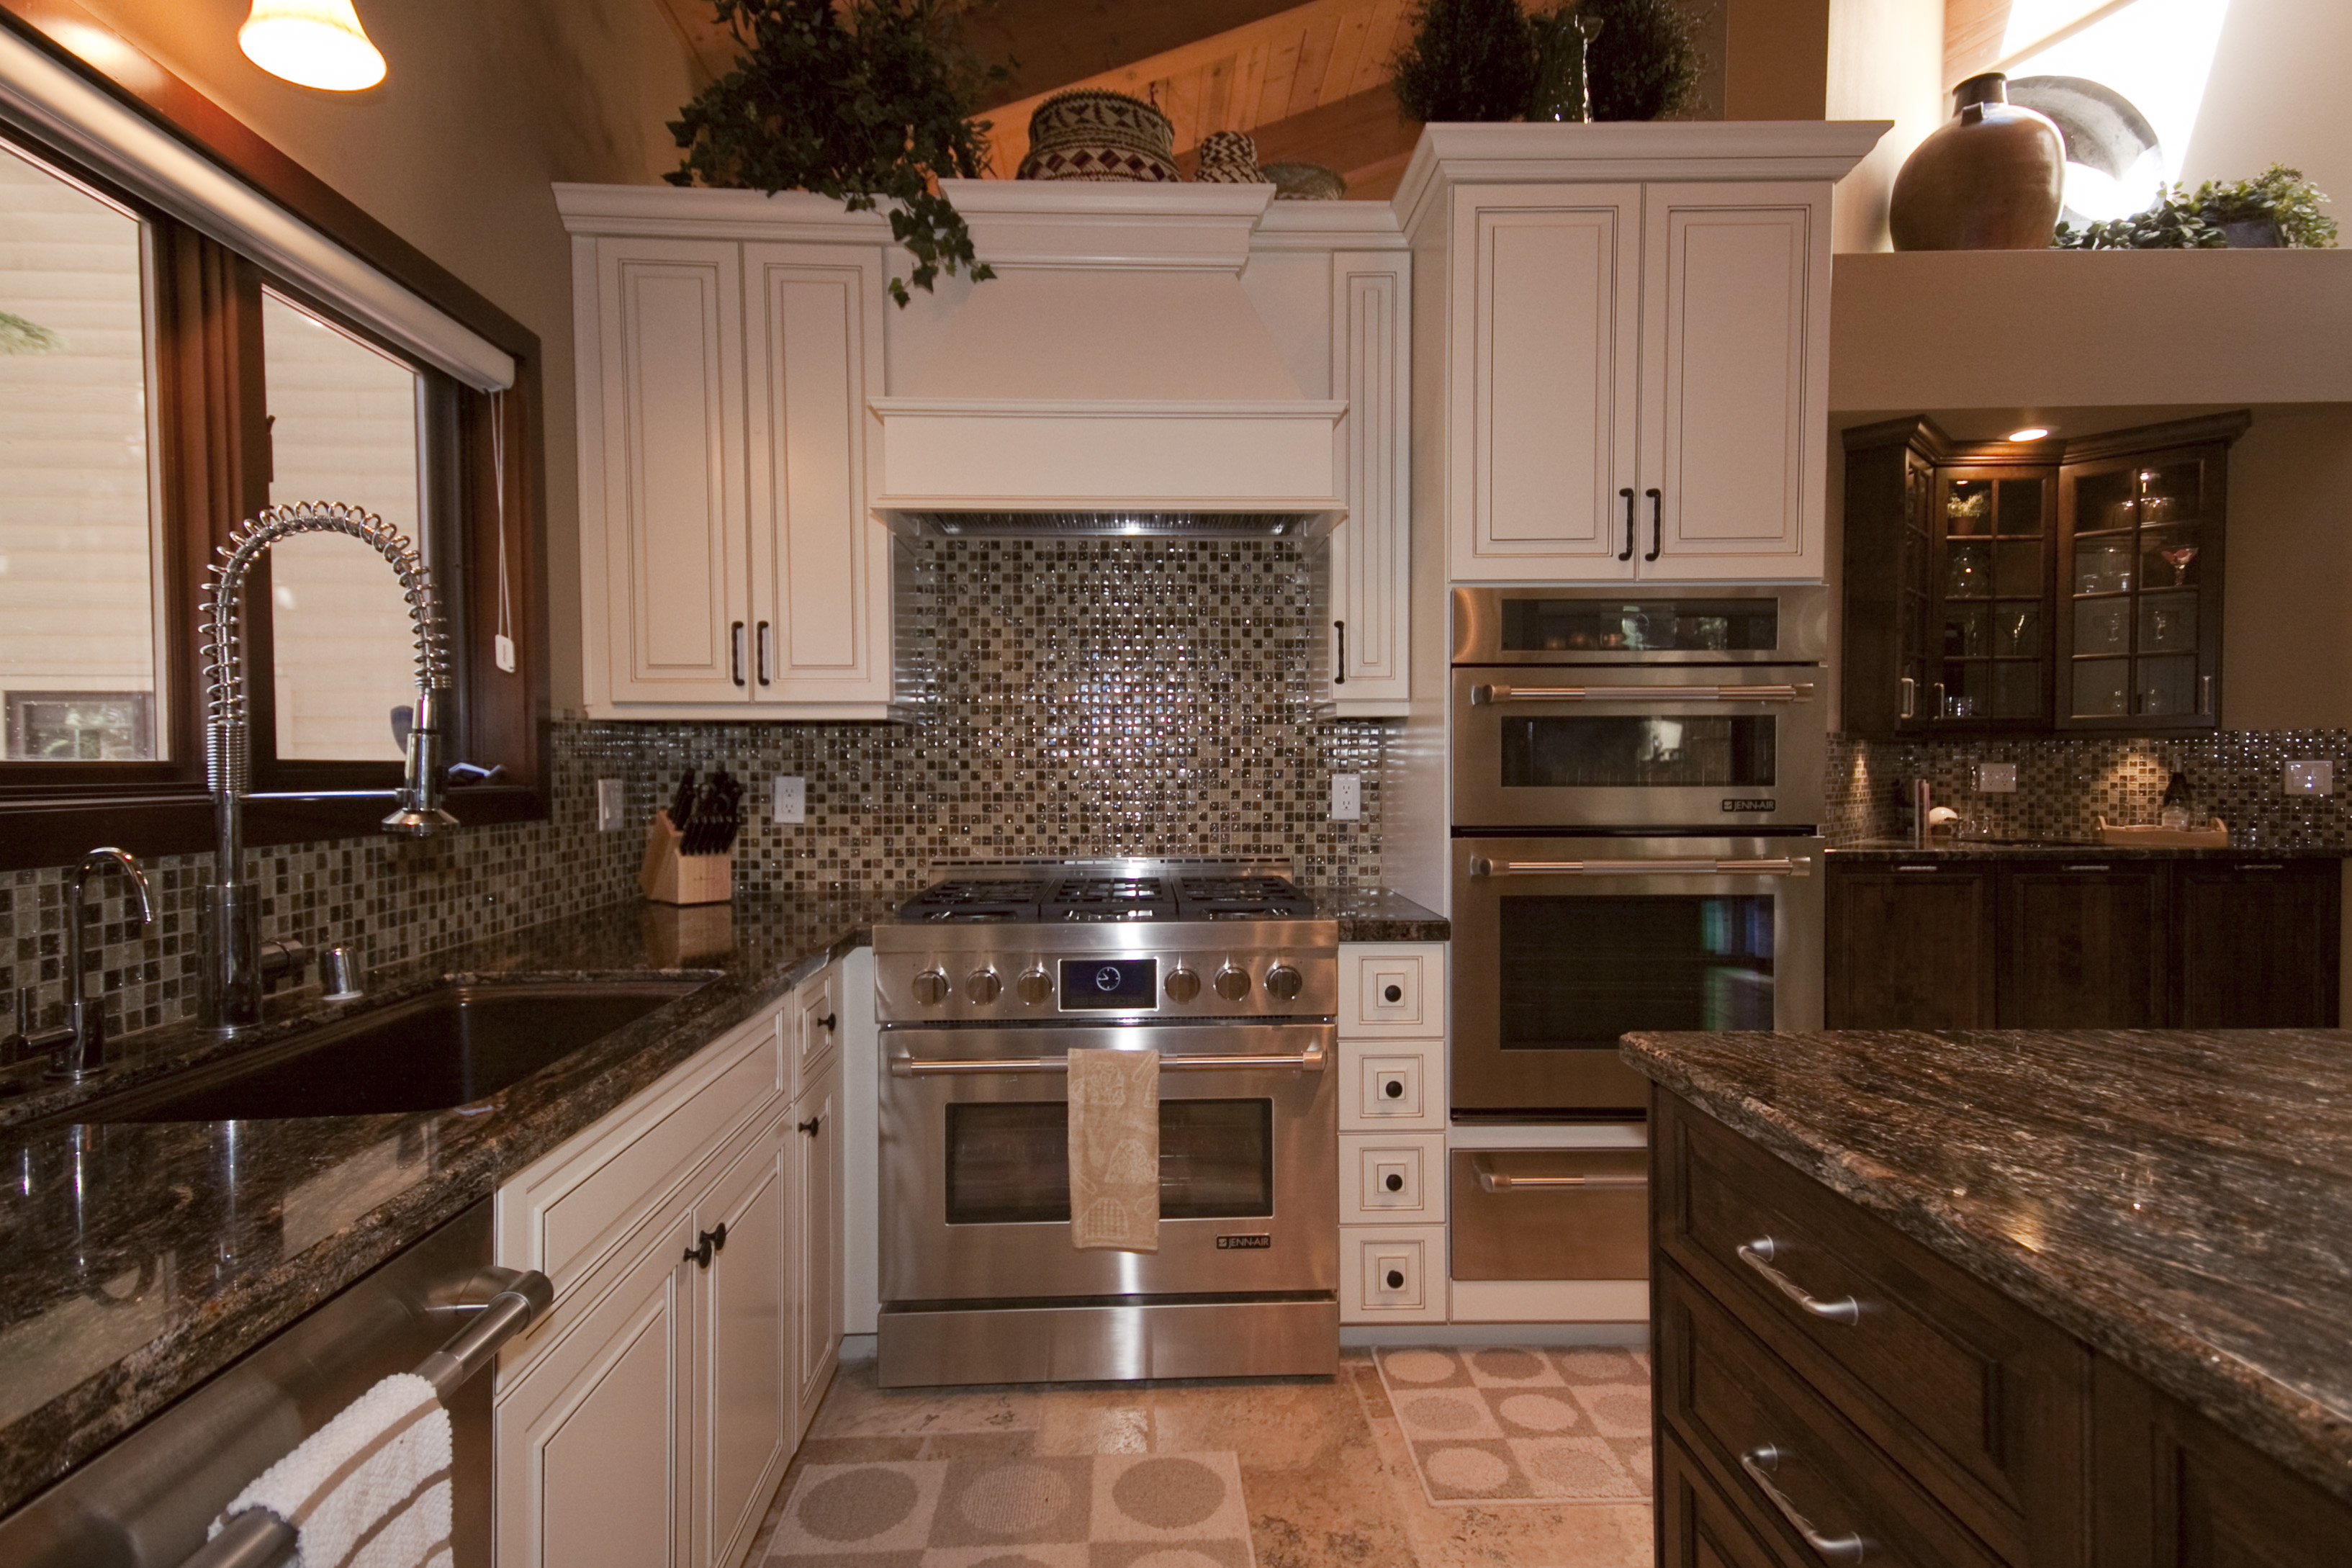 benefits of remodeling your kitchen and bathroom remodeling a kitchen Remodeled Kitchen Pictures